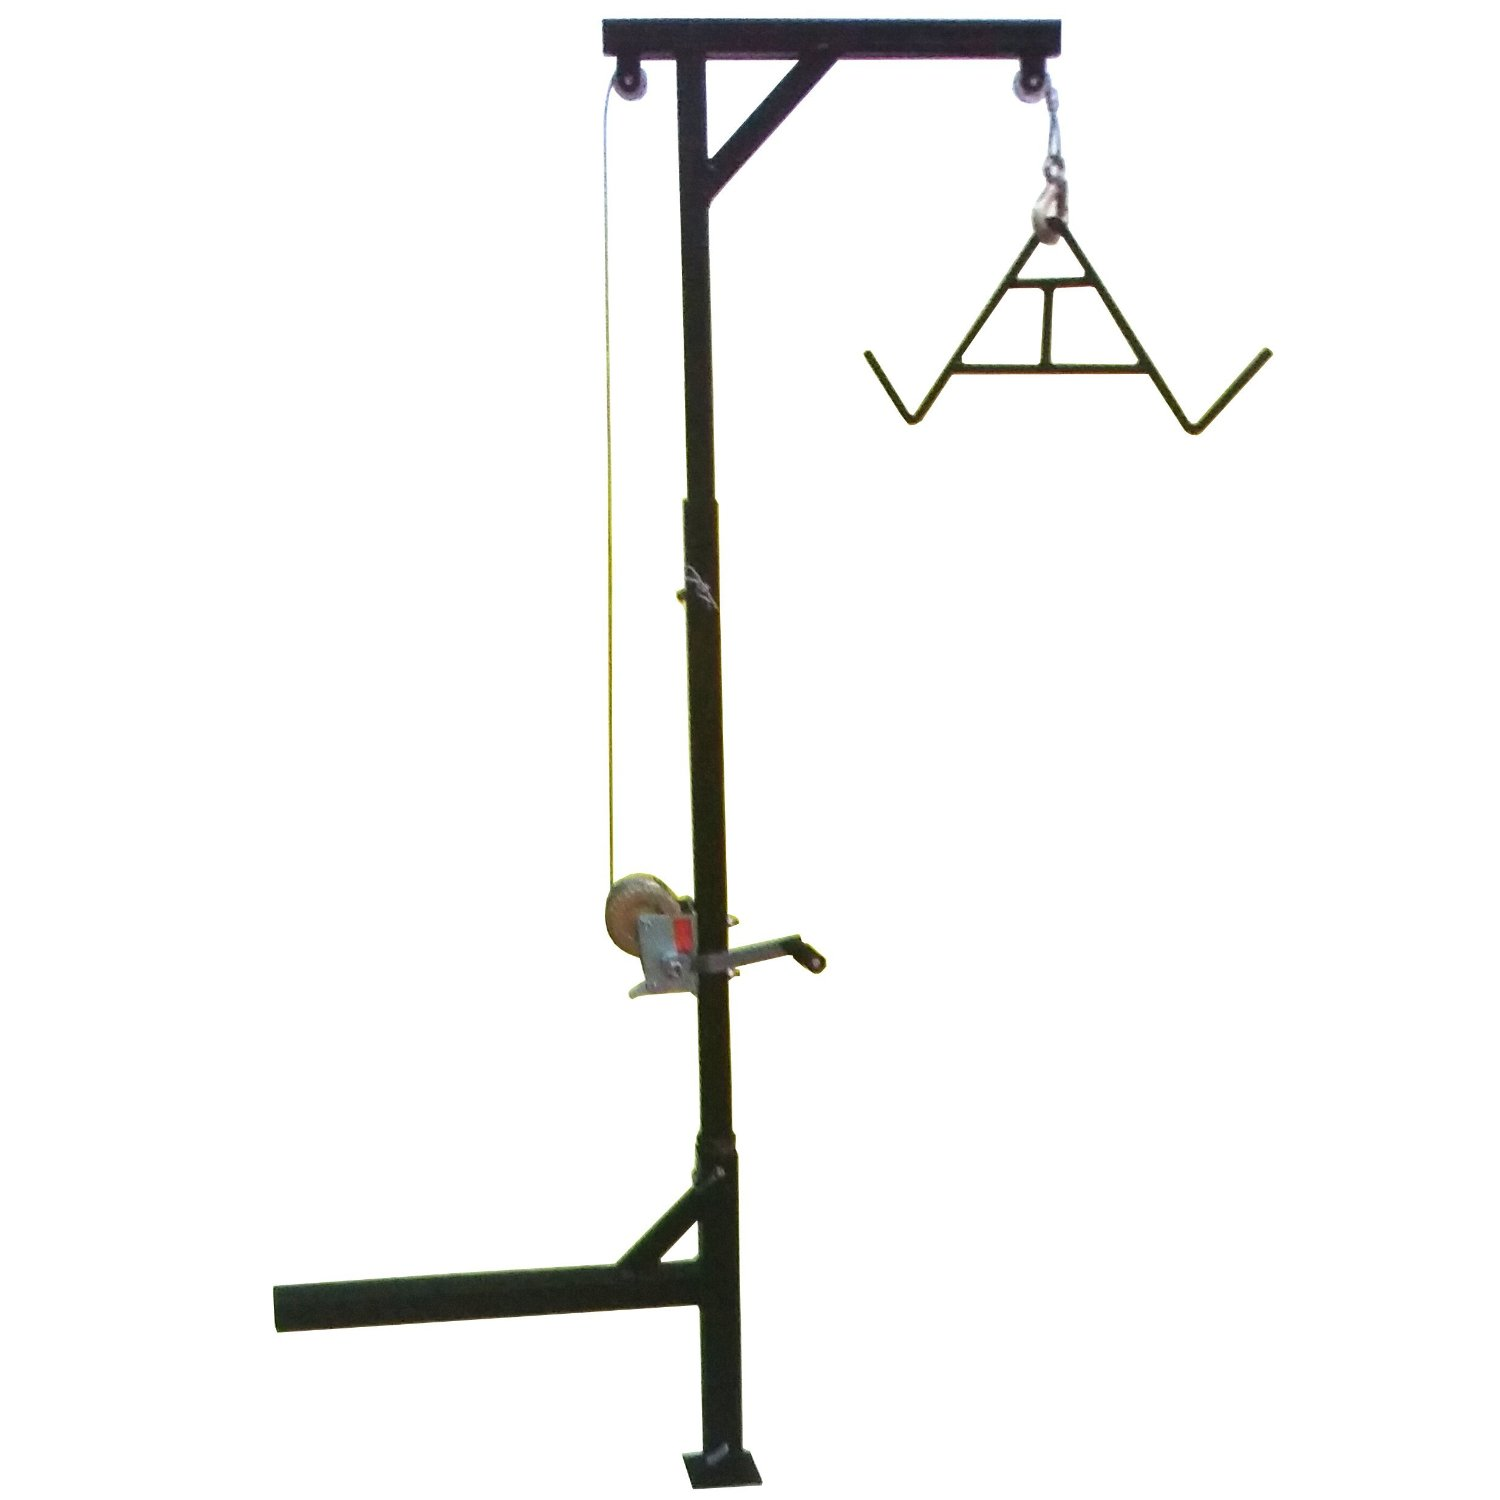 Hitch Mounted 600 Pound Swivel Game Hunting Deer Hoist with Winch Lift Gambrel